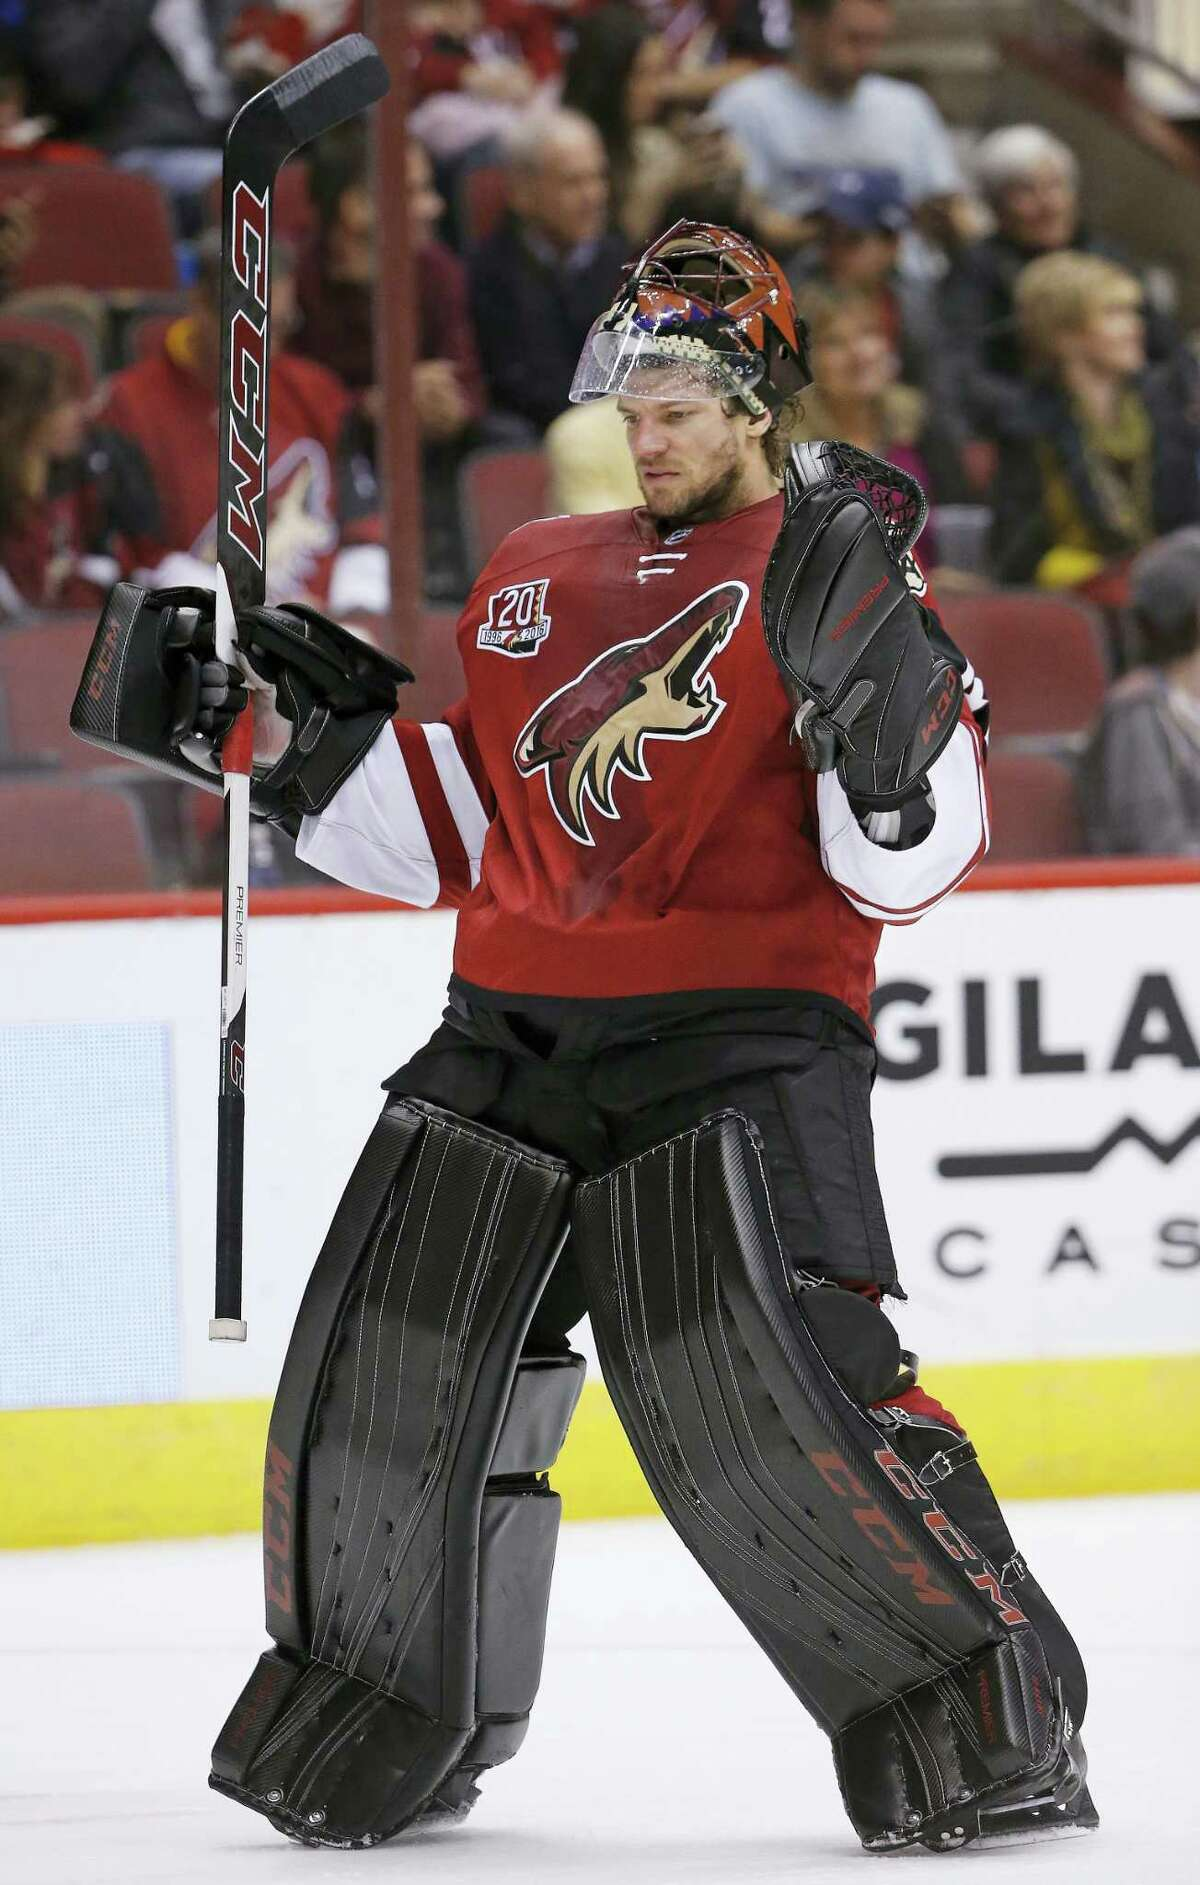 Arizona Coyotes goalie Mike Smith skates back to his goal area during the first period of an NHL hockey game against the Columbus Blue Jackets Saturday, Dec. 3, 2016, in Glendale, Ariz. The Blue Jackets defeated the Coyotes 3-2 in a shootout.